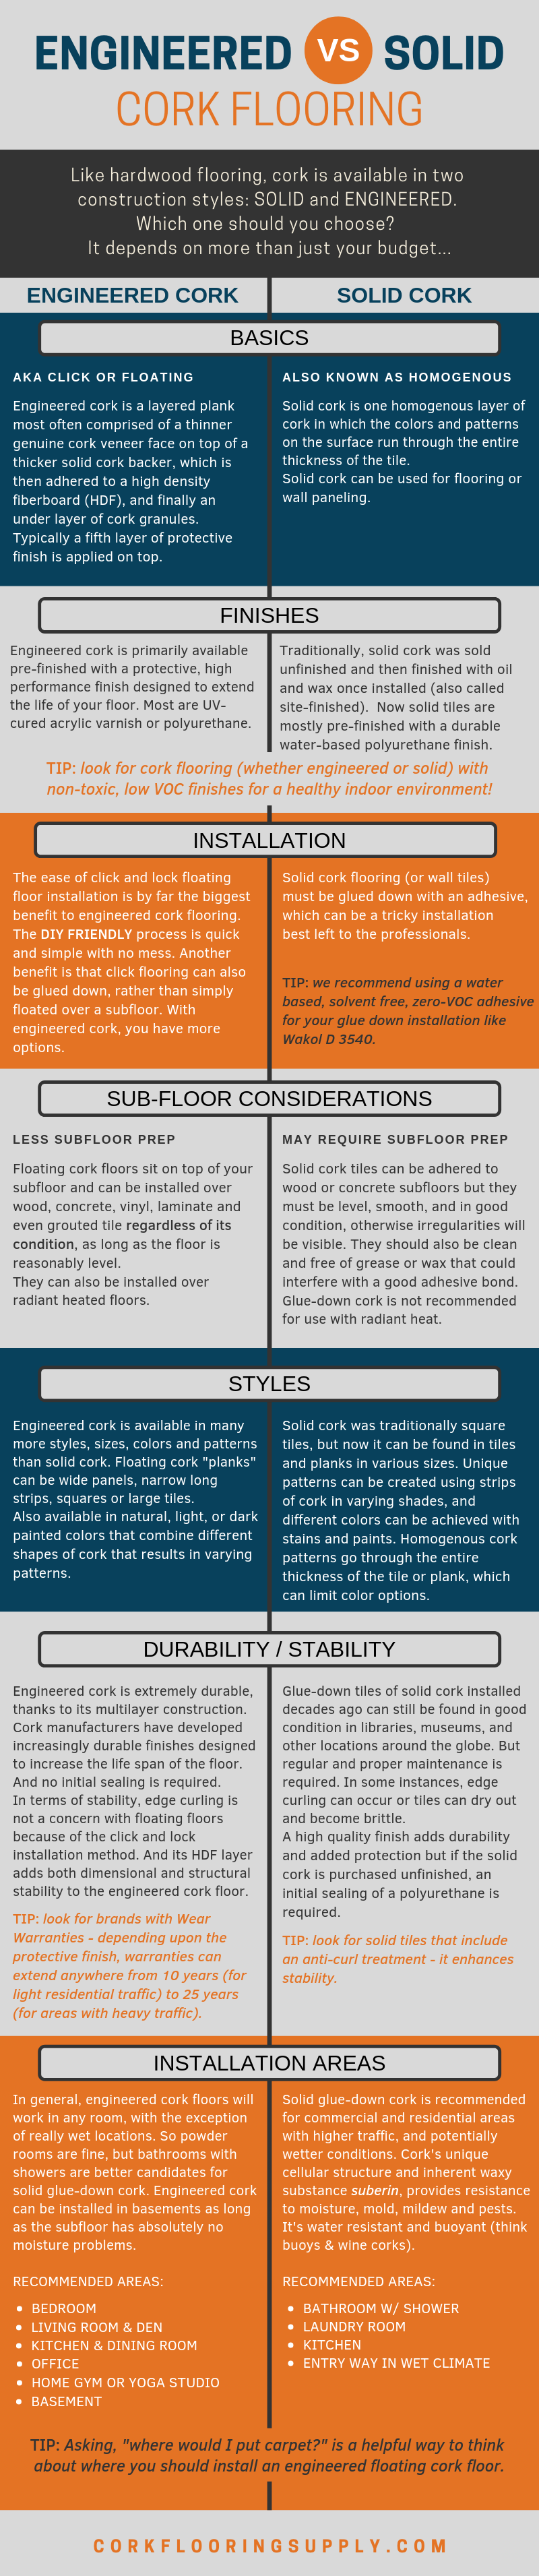 "ENGINEERED vs. SOLID CORK FLOORING: An Infographic explaining the differences between Engineered and Solid Cork Flooring and the benefits of each. Like hardwood flooring, cork is available in two construction styles: SOLID and ENGINEERED. Which one should you choose for your home? The answer depends on more than just your budget.  TIP: Asking, ""where would I put carpet?"" is a helpful way to think about where you should install an engineered floating cork floor."